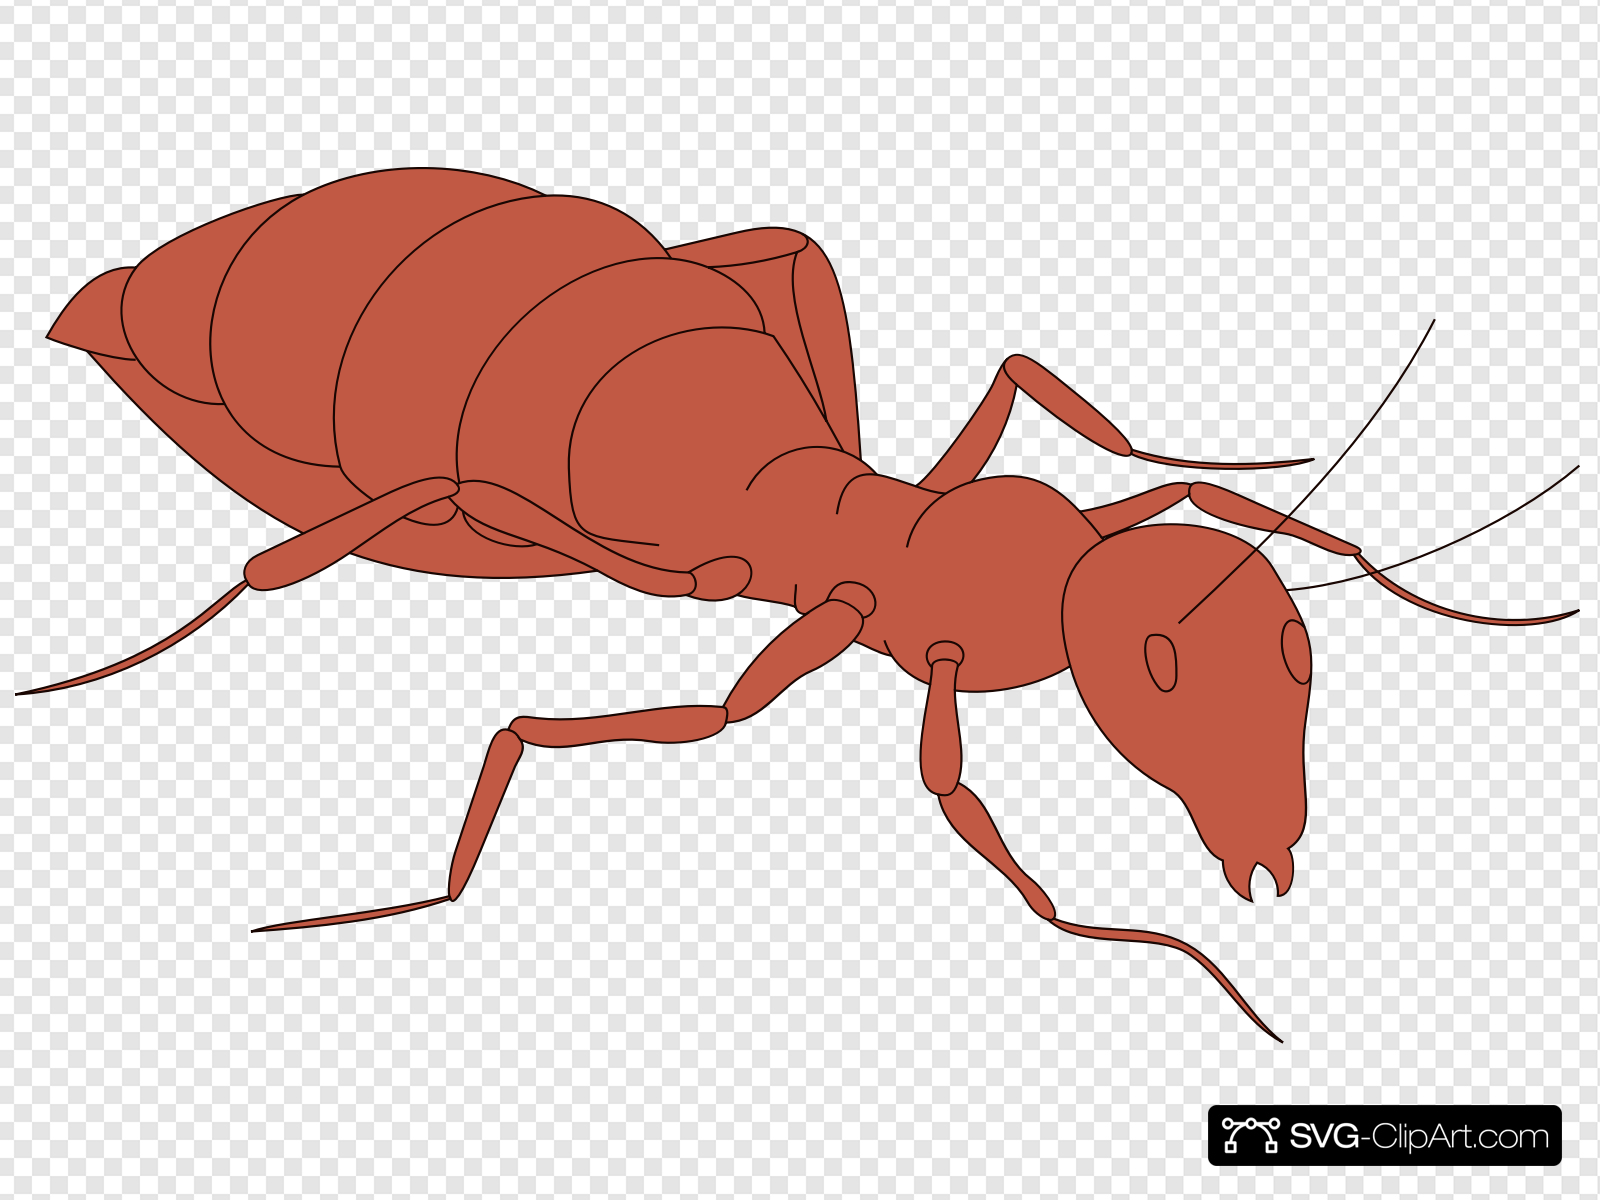 Walking Orange Ant Clip art, Icon and SVG.